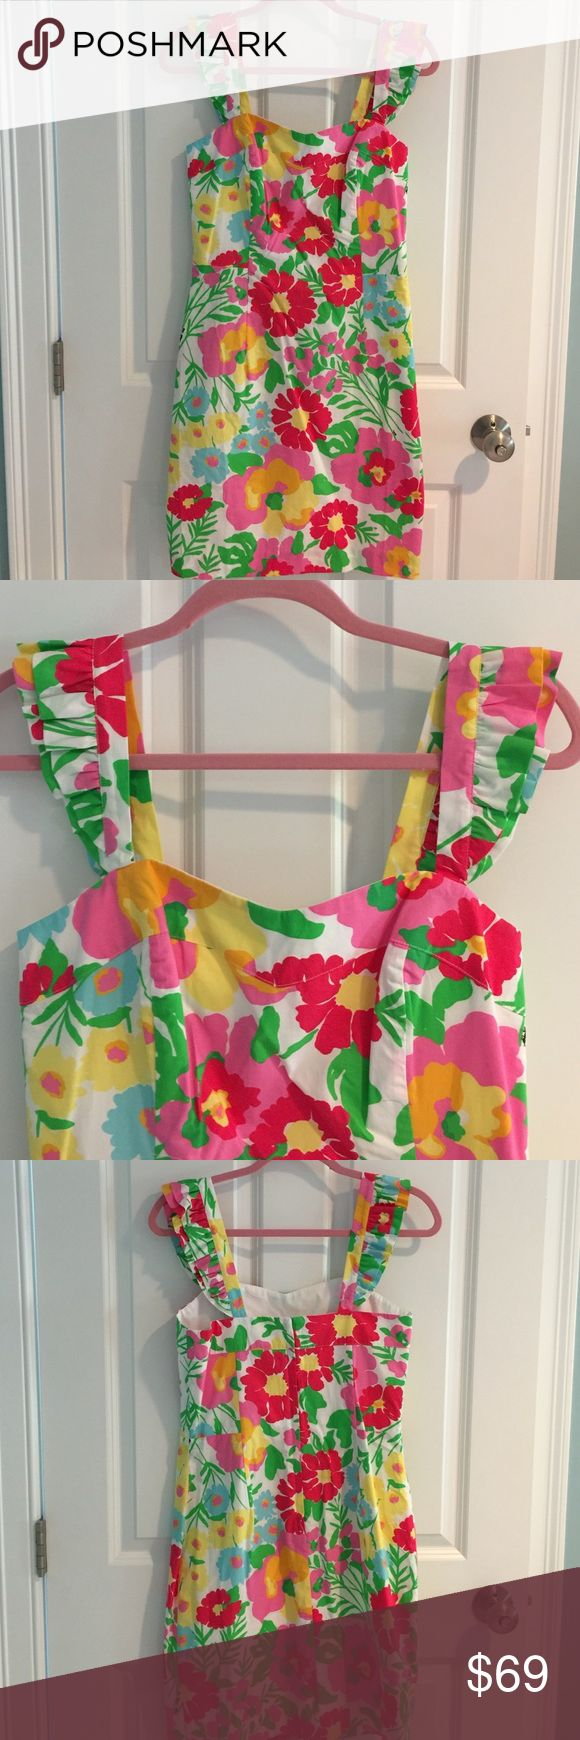 """Lilly Pulitzer Floral Dress, size 8 Lily Pulitzer floral dress, size 8. 100% cotton. Ruffle detailing on straps. NOTE: this has never been worn, but the straps were hand sewn down at one point. I have removed the stitching and the marks will be unnoticeable after a good iron. The asking price reflects this.  No trades, all offers will be negotiated when using the """"offer"""" button. Please read my reviews and buy with confidence! Lilly Pulitzer Dresses"""